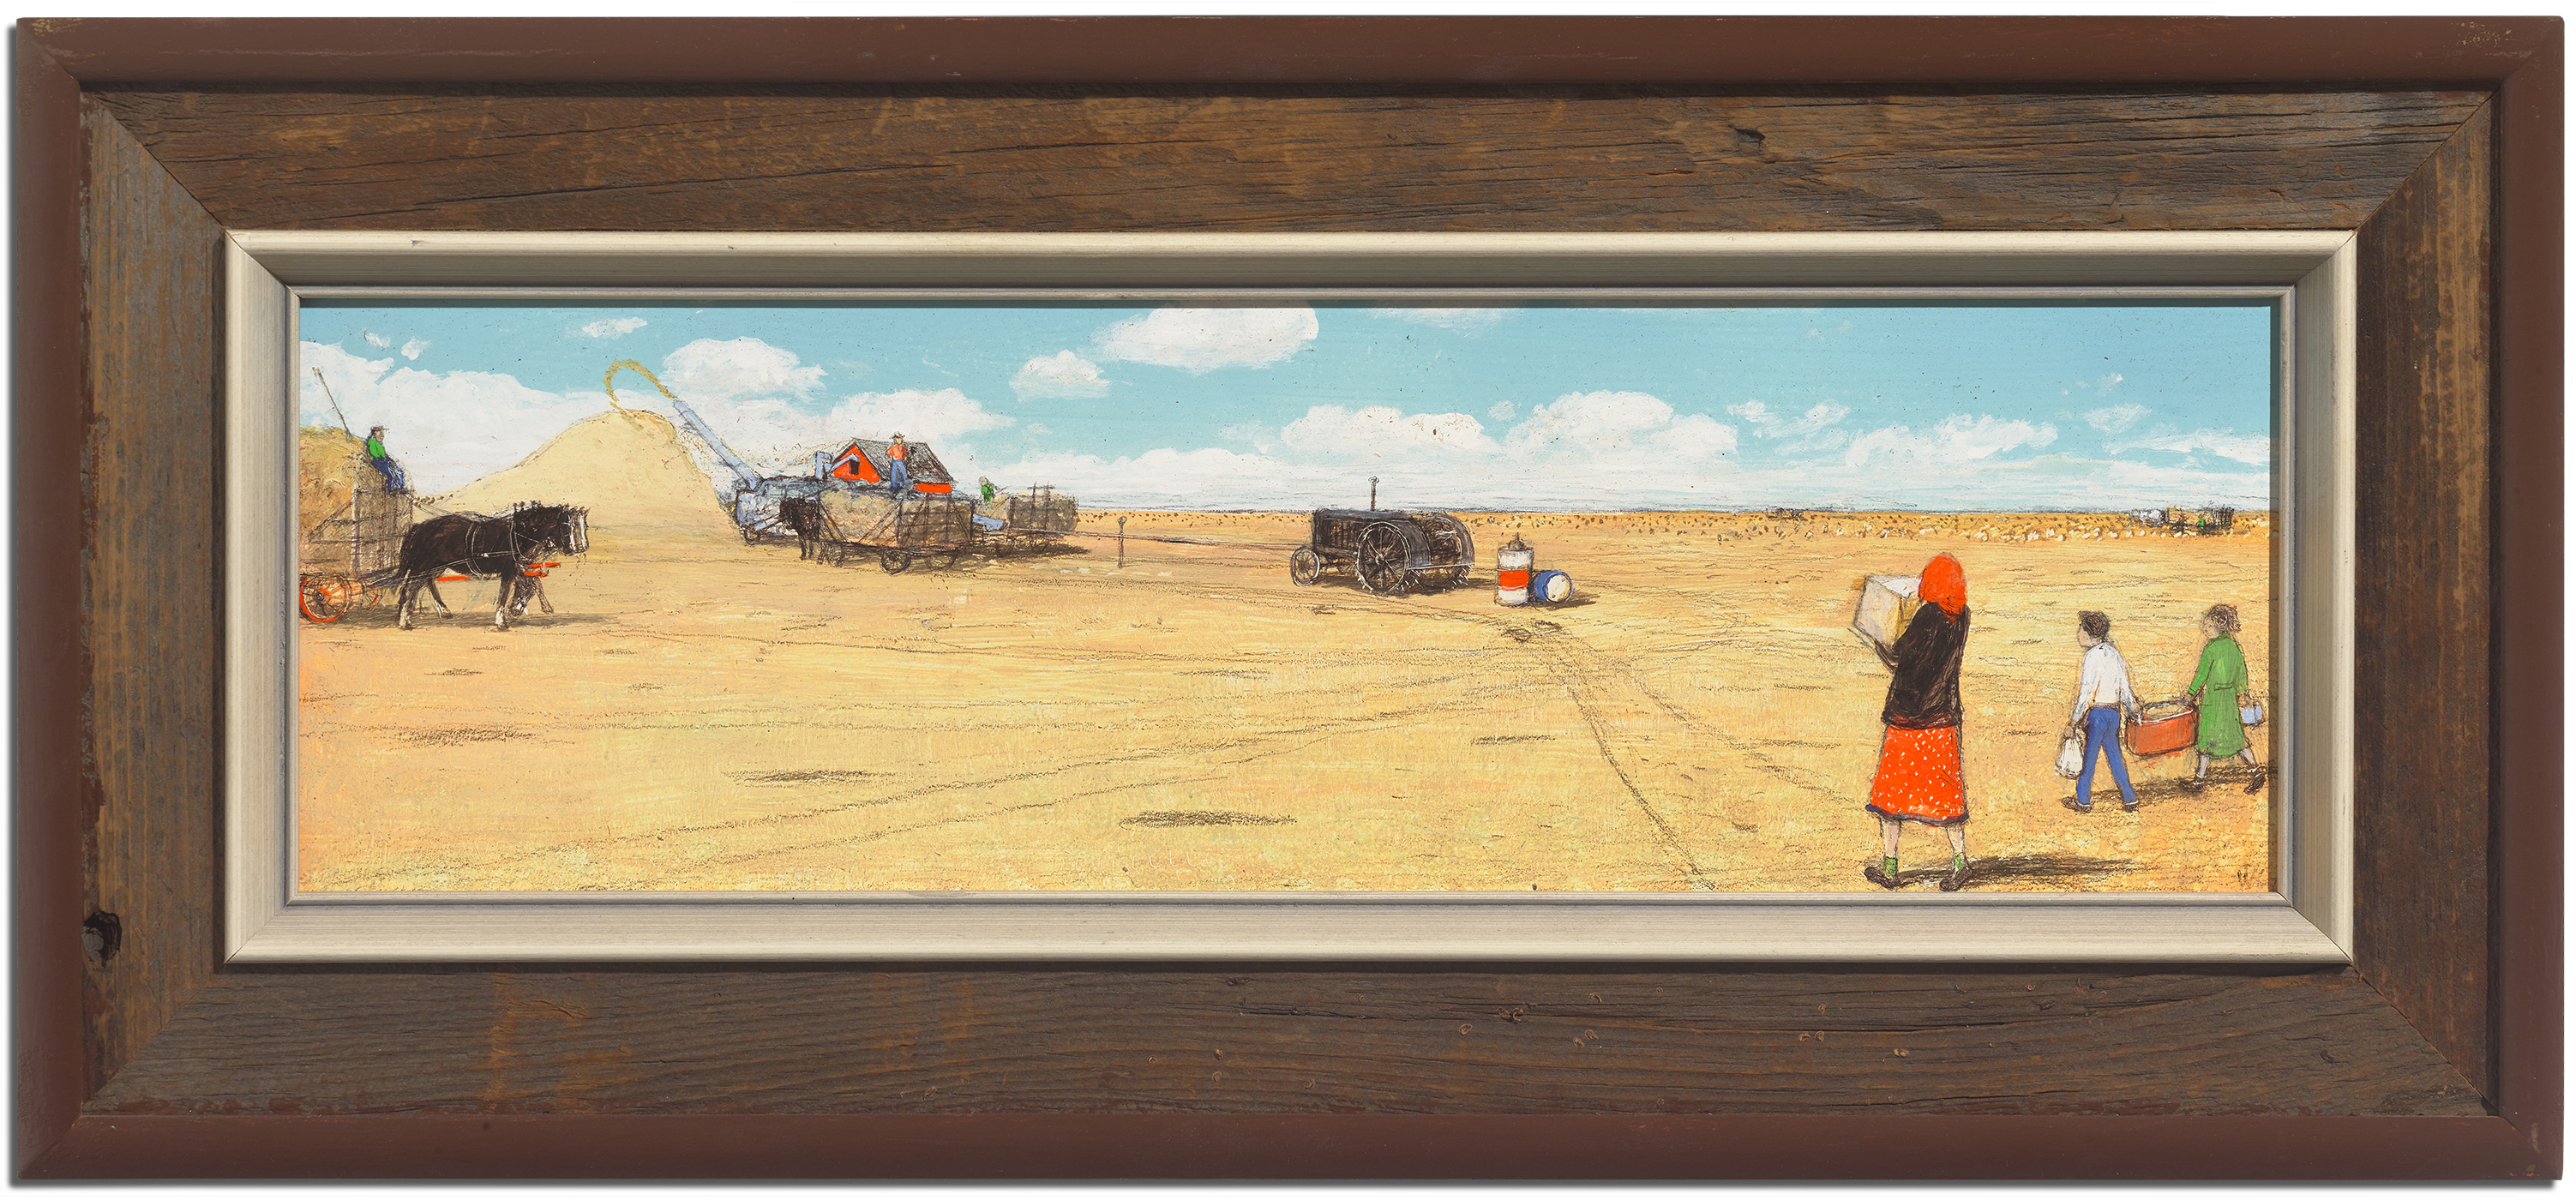 William Kurelek, Threshing Outfit Being Brought Lunch (1972)